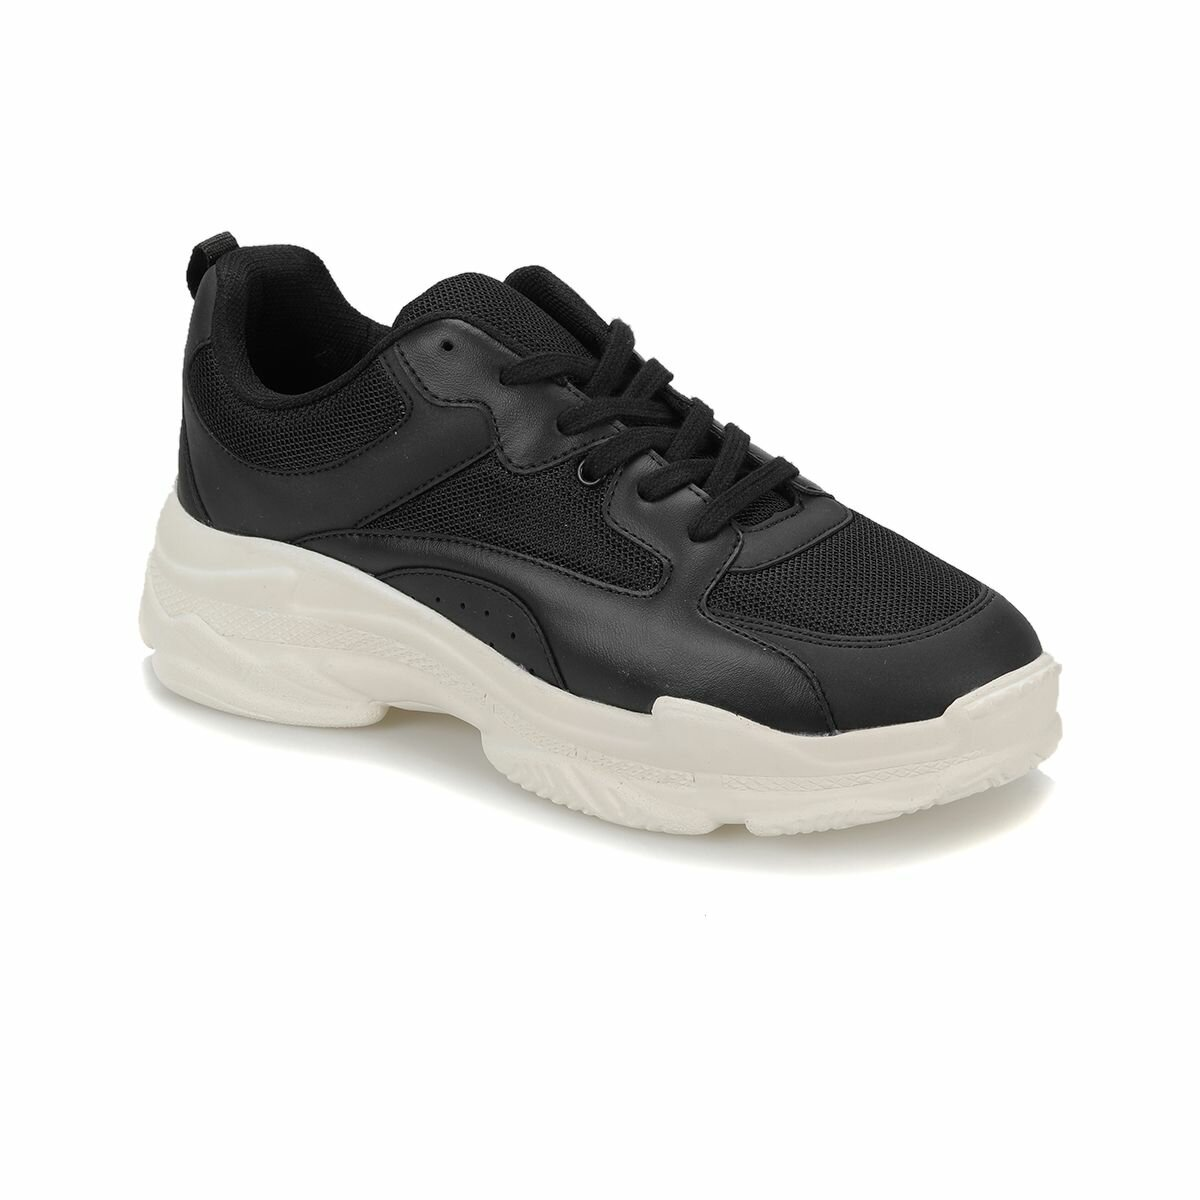 FLO BLC-BYZ Black Male Shoes Forester